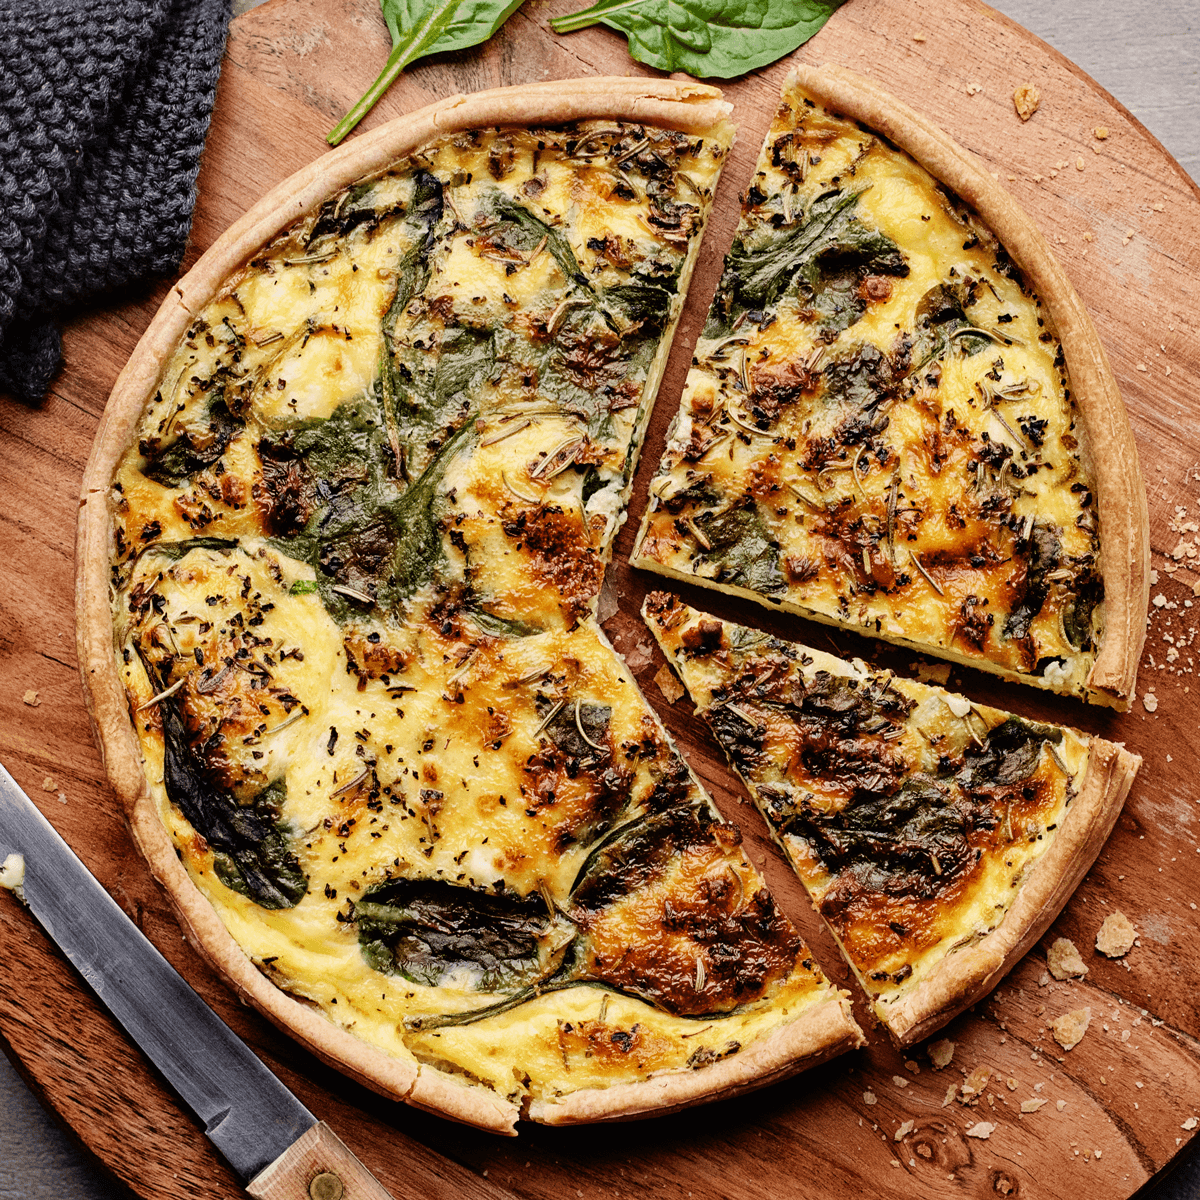 Spinach quiche from Goodfood